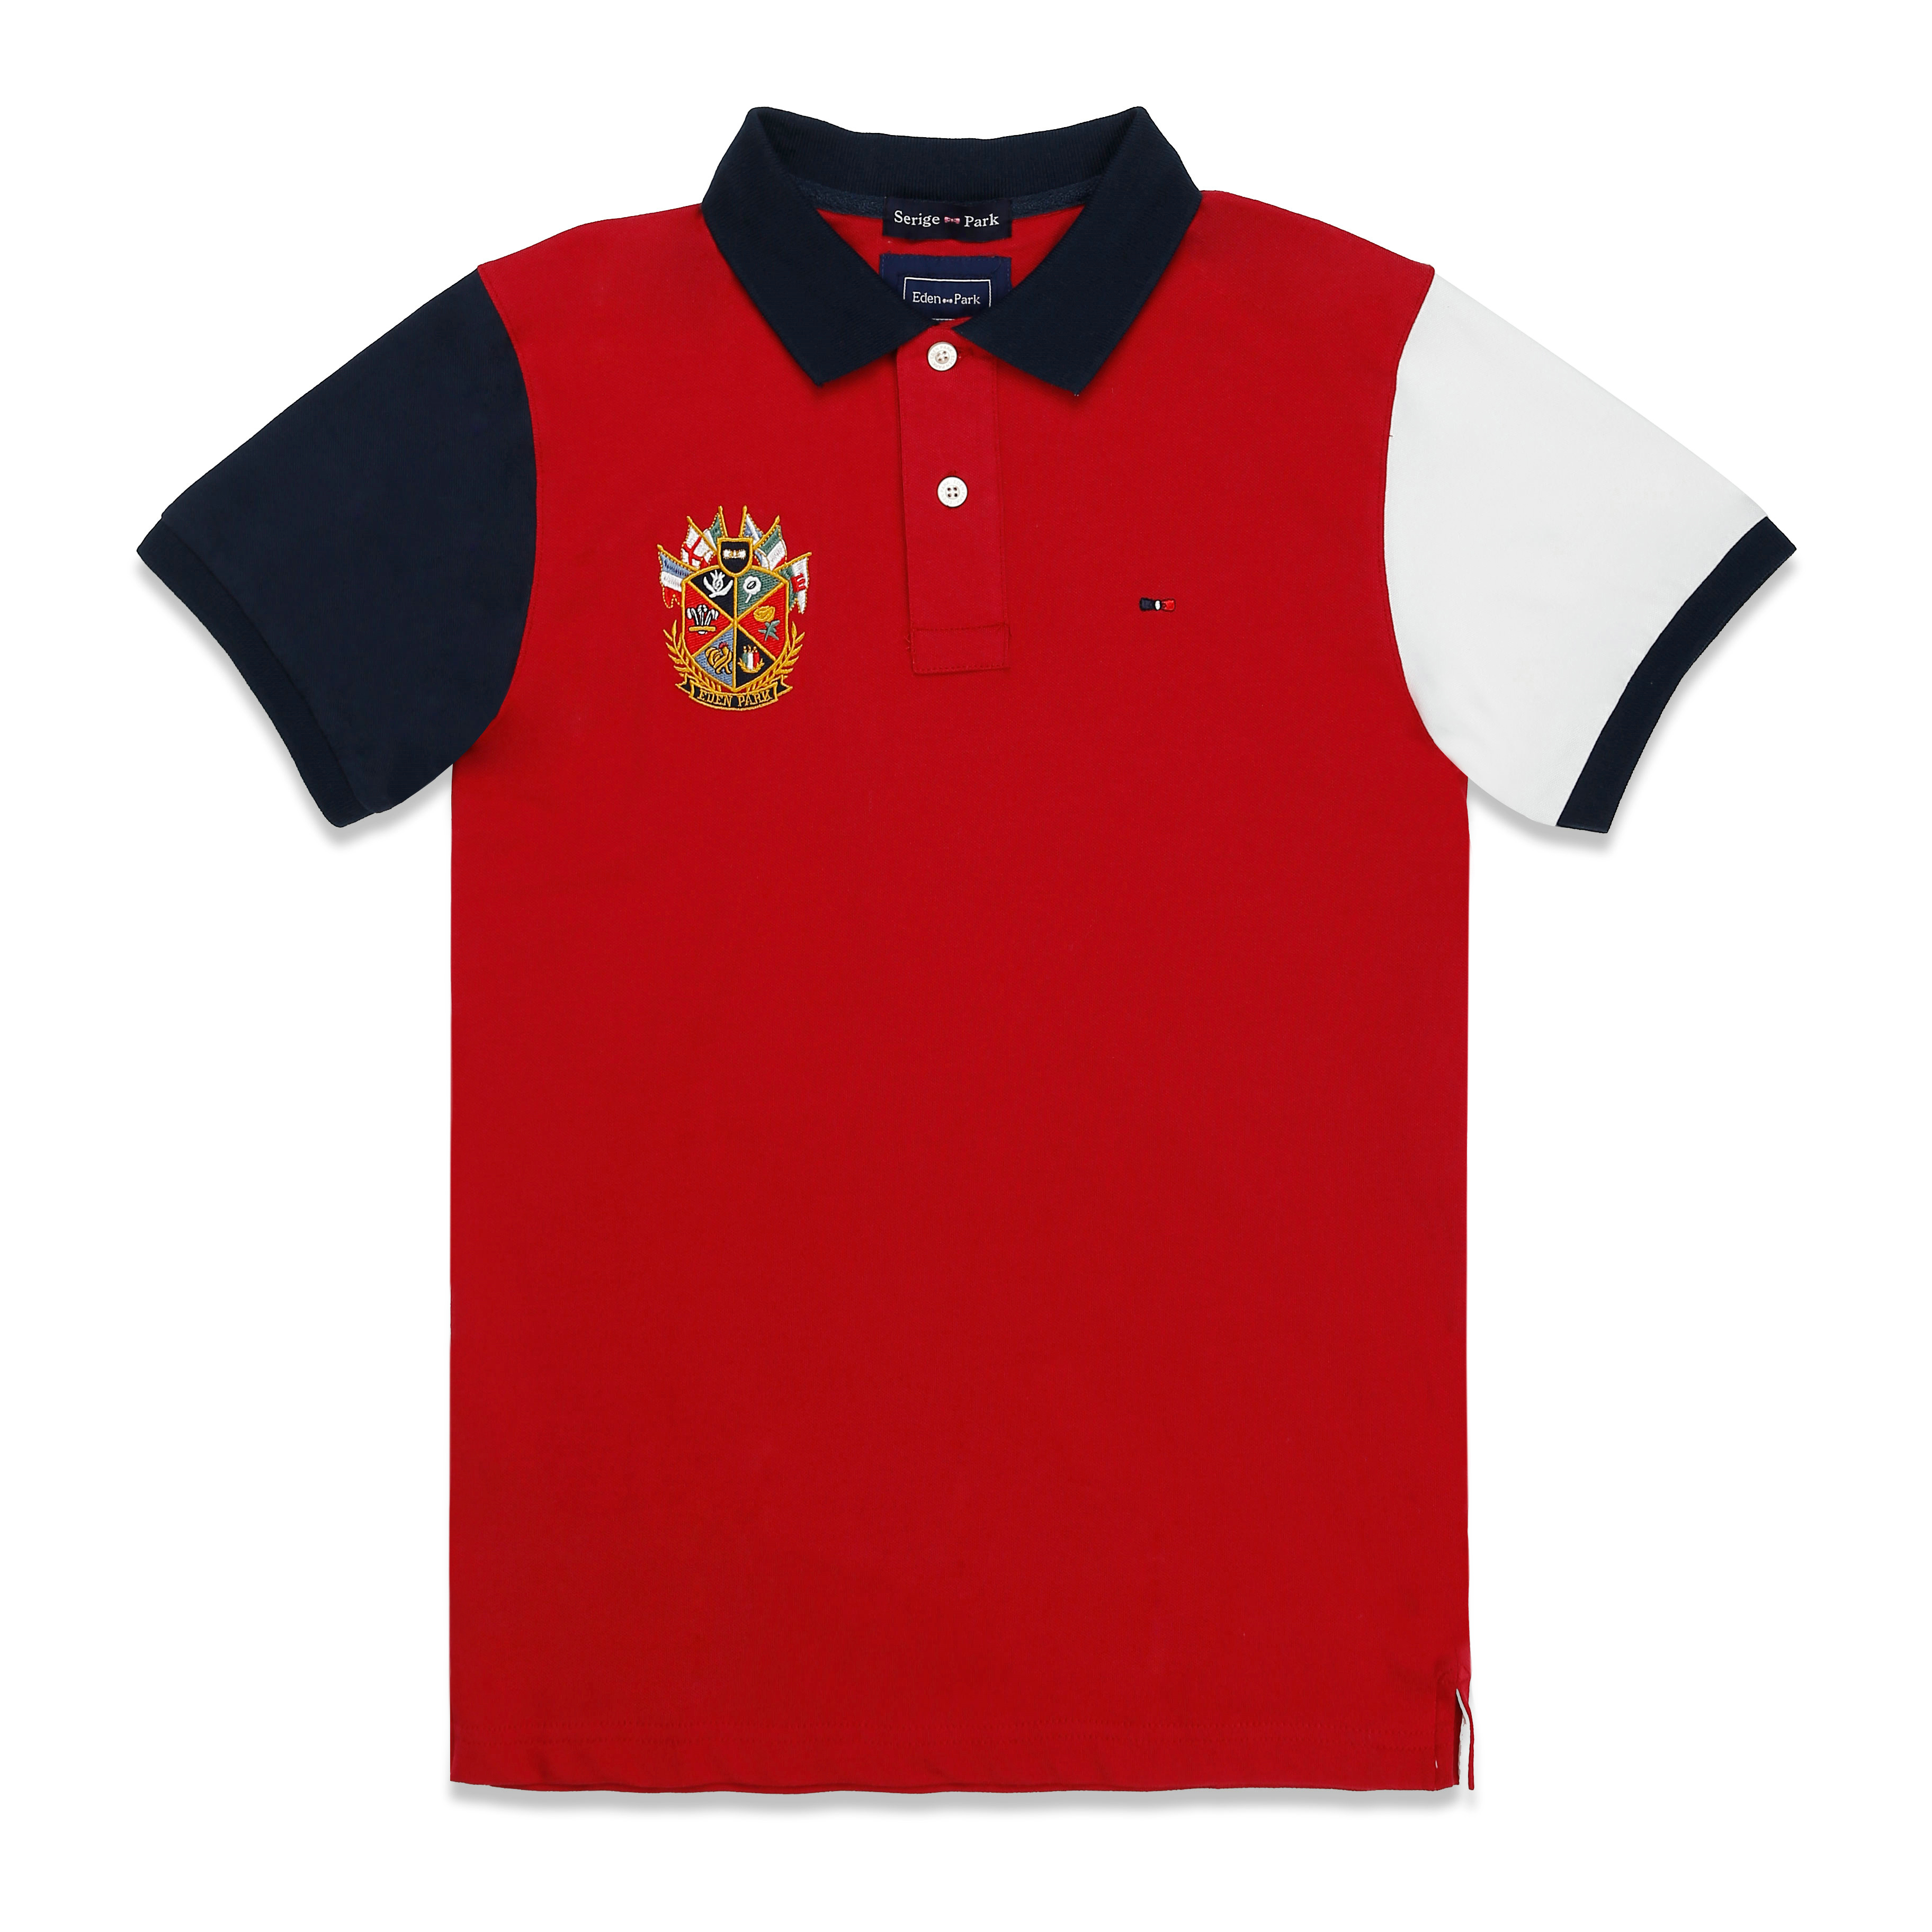 2019 NEW MEN   POLO   SHIRTSUMMER HIGH QUALITY BRAND SERIGE EDEN PARK FRANCE BRAND SUPERIOR COTTON MATERIAL AND EXCELLENT QUALITY